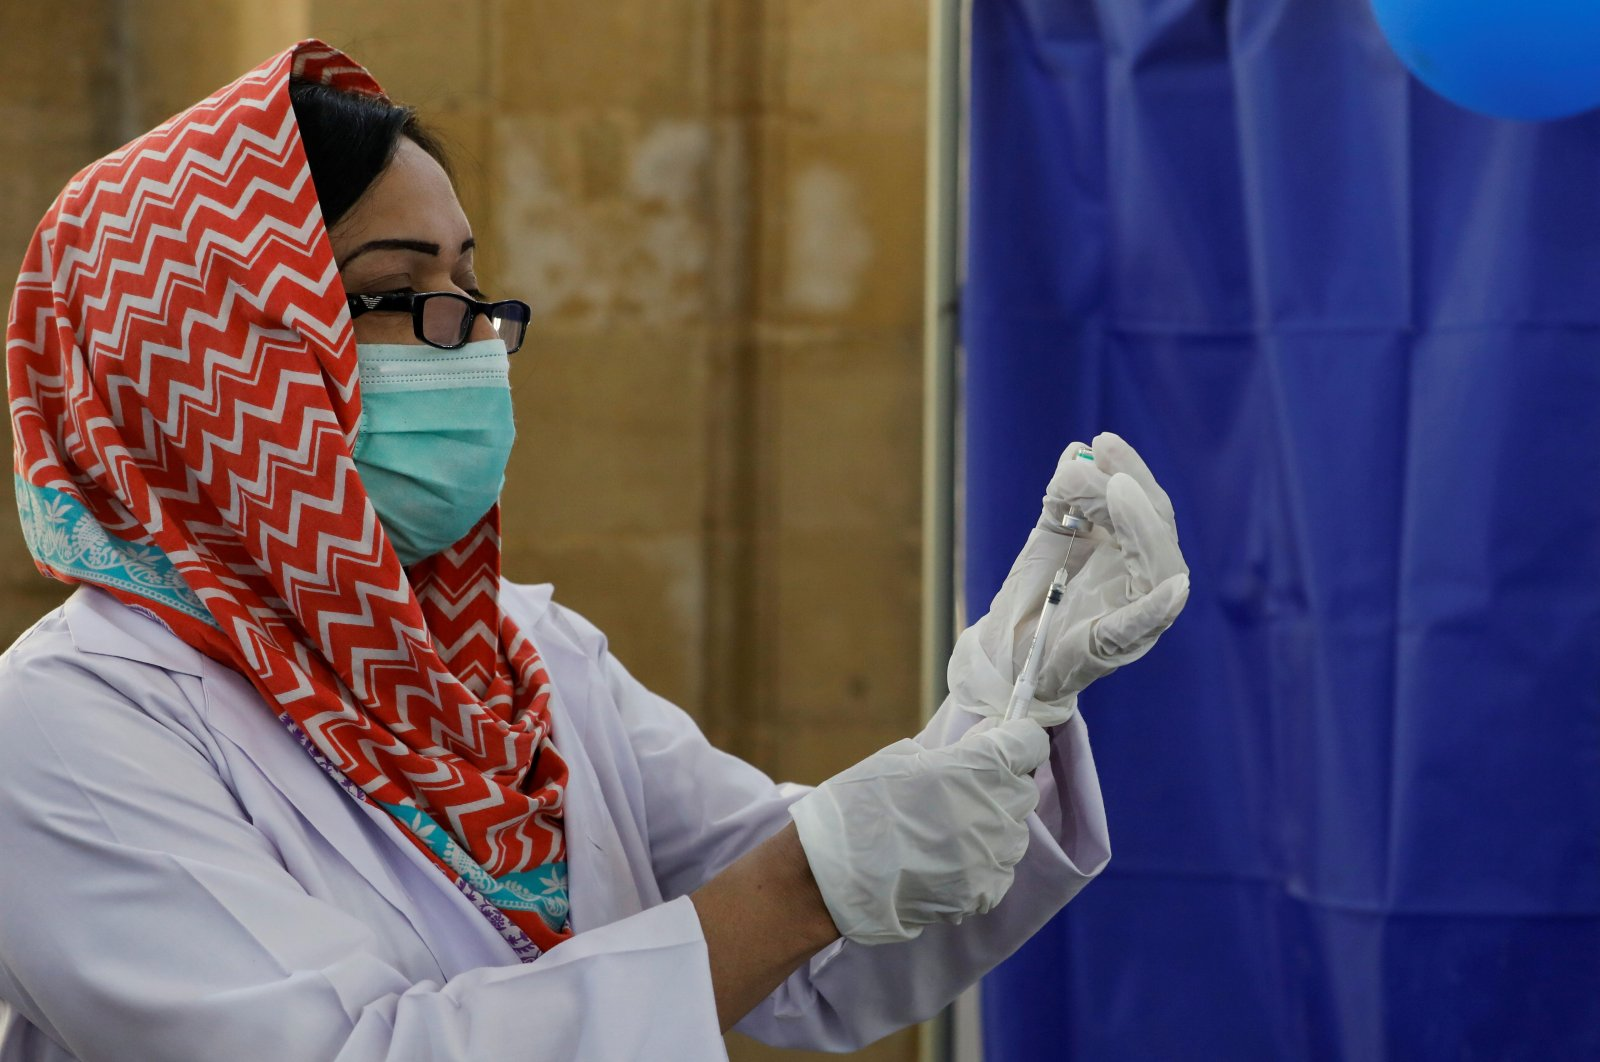 A paramedic prepares a dose of Sinopharm's coronavirus disease (COVID-19) vaccine before administering it to a health worker at a vaccination center in Karachi, Pakistan, Feb. 11, 2021. (REUTERS/Akhtar Soomro)